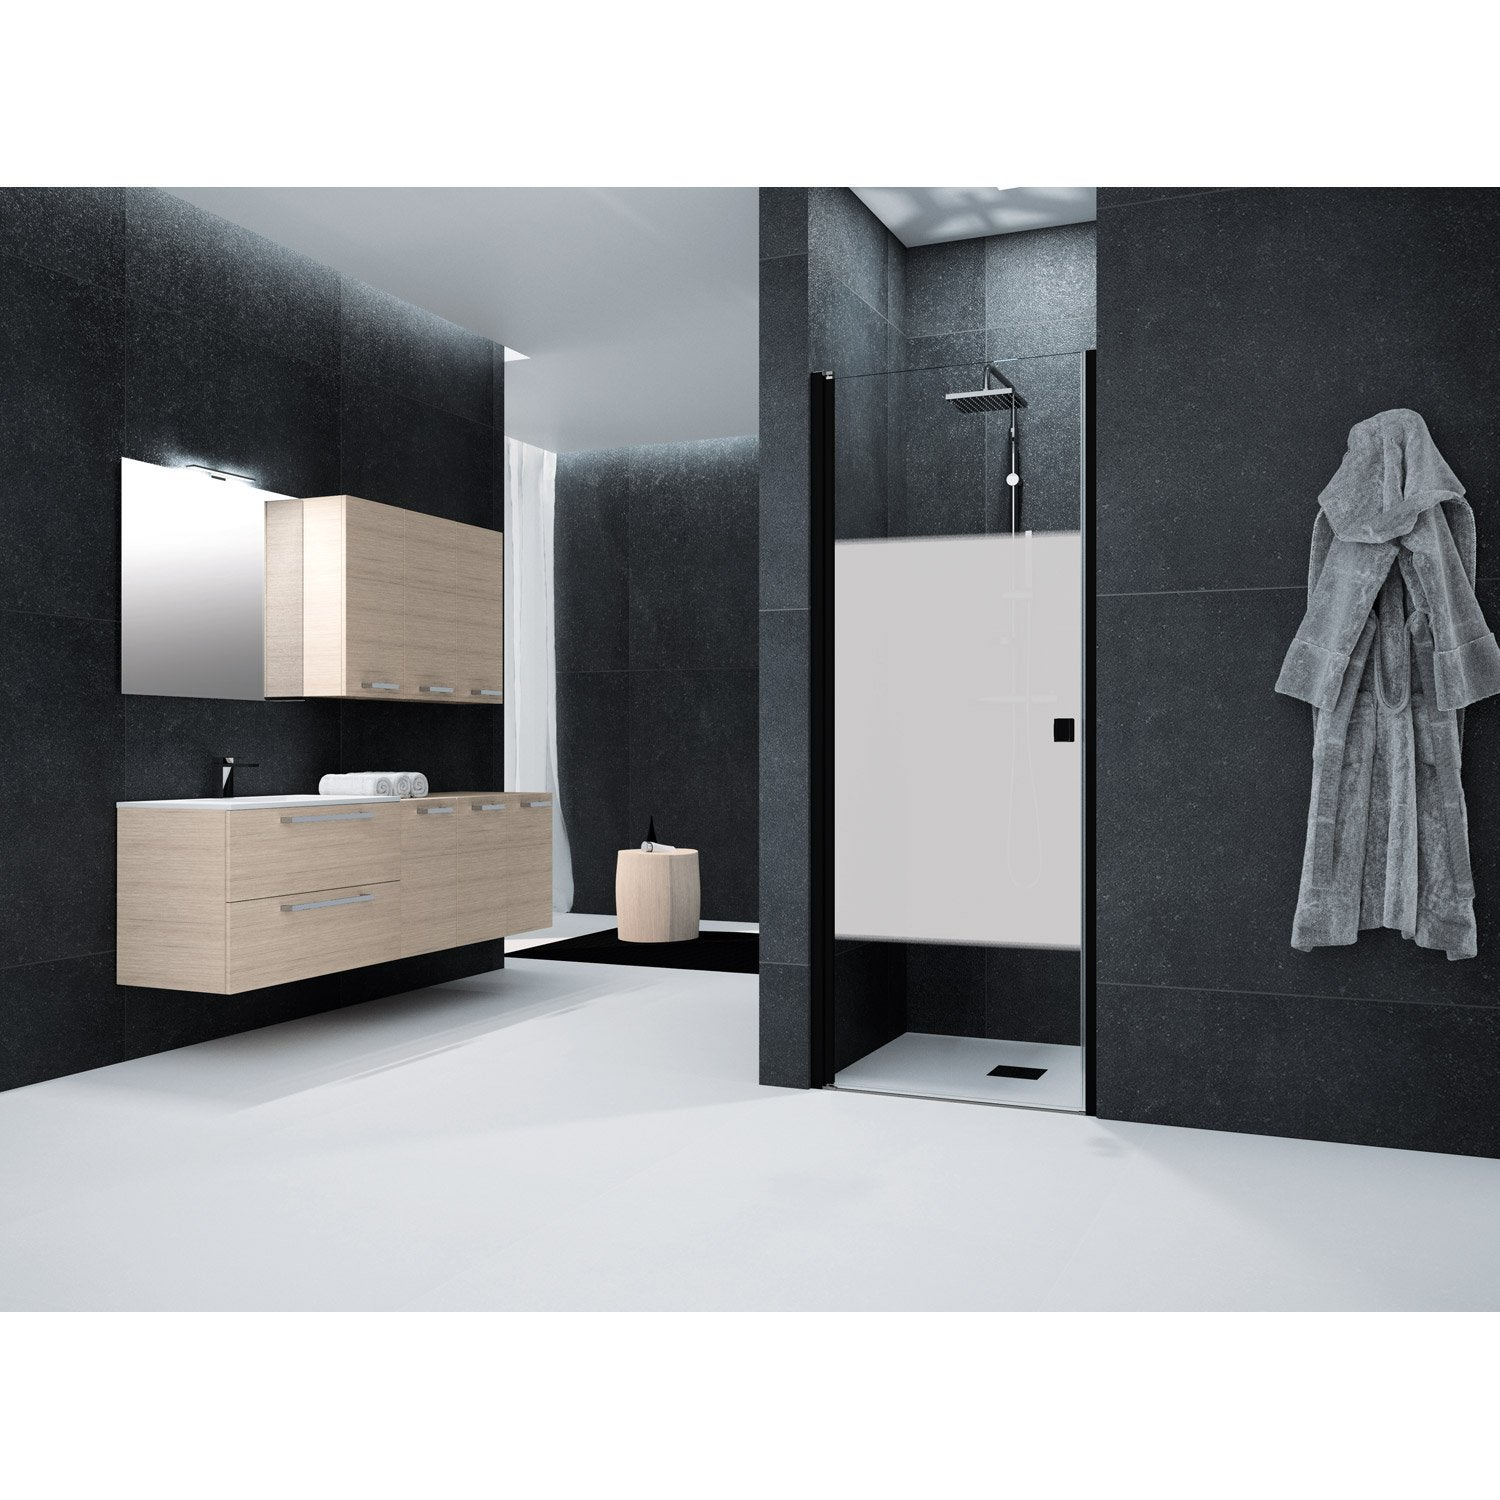 porte de douche pivotante 70 cm s rigraphi neo leroy merlin. Black Bedroom Furniture Sets. Home Design Ideas